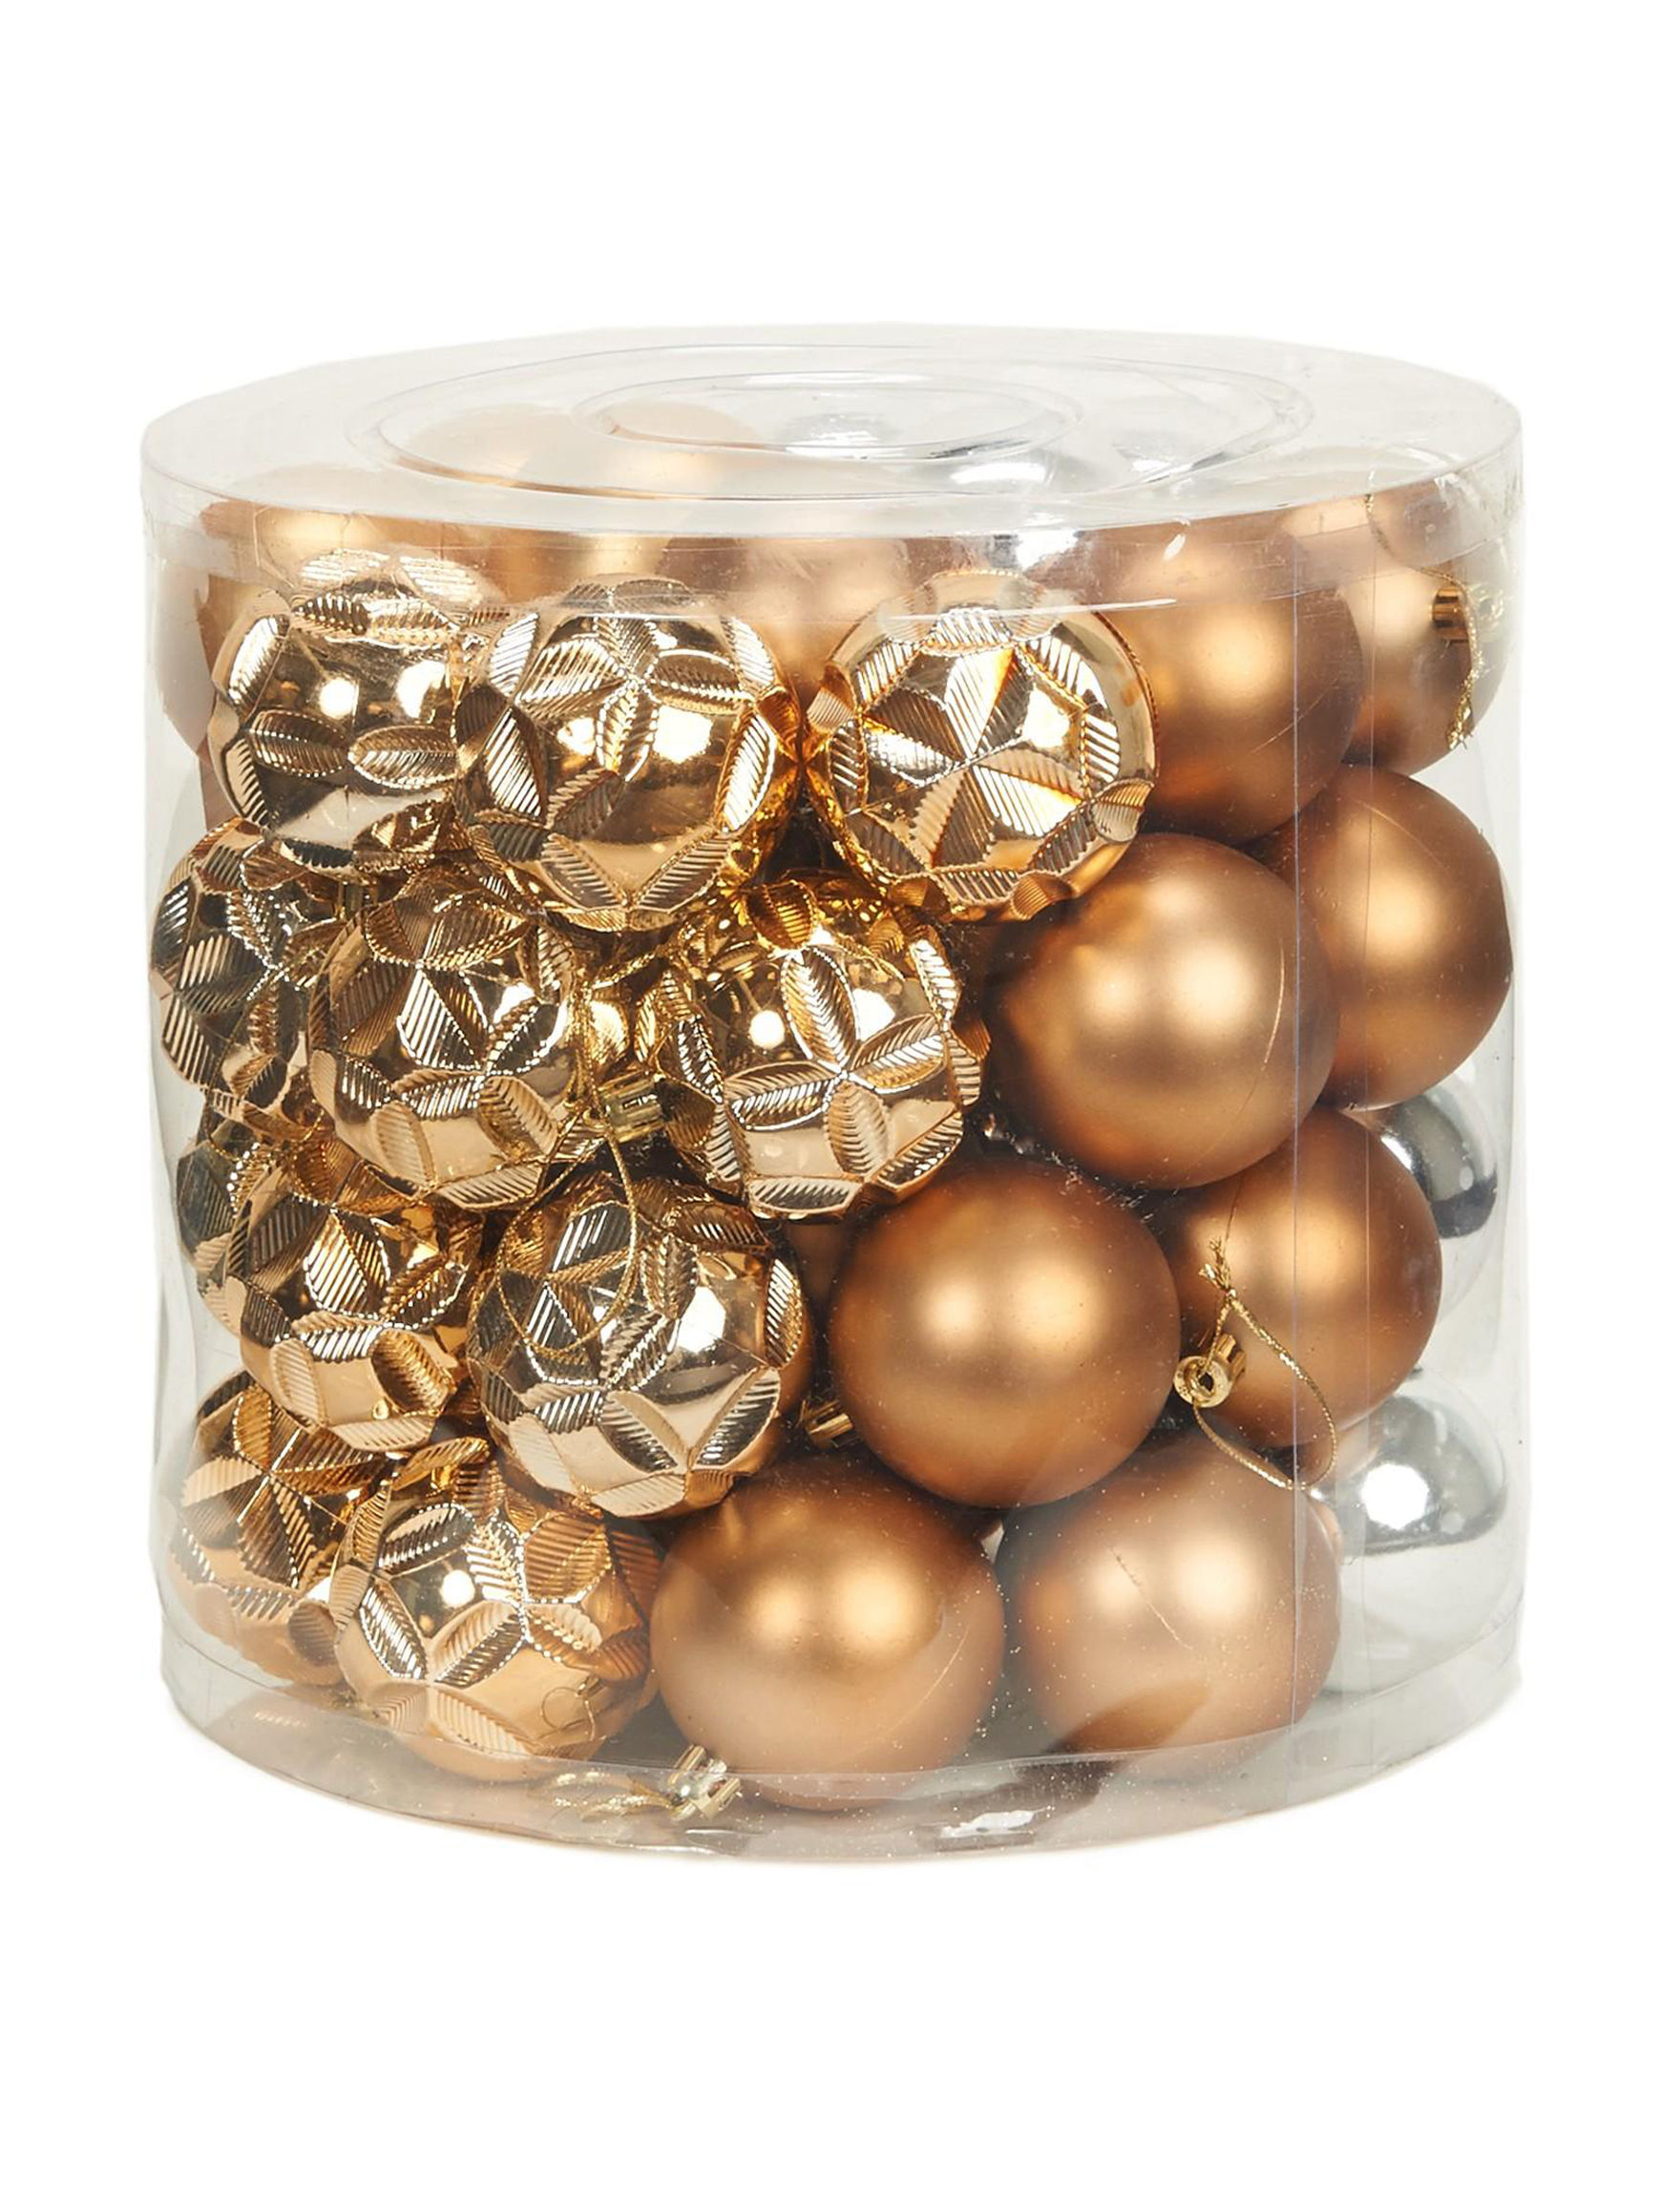 BuySeasons Gold Decorative Objects Ornaments Holiday Decor